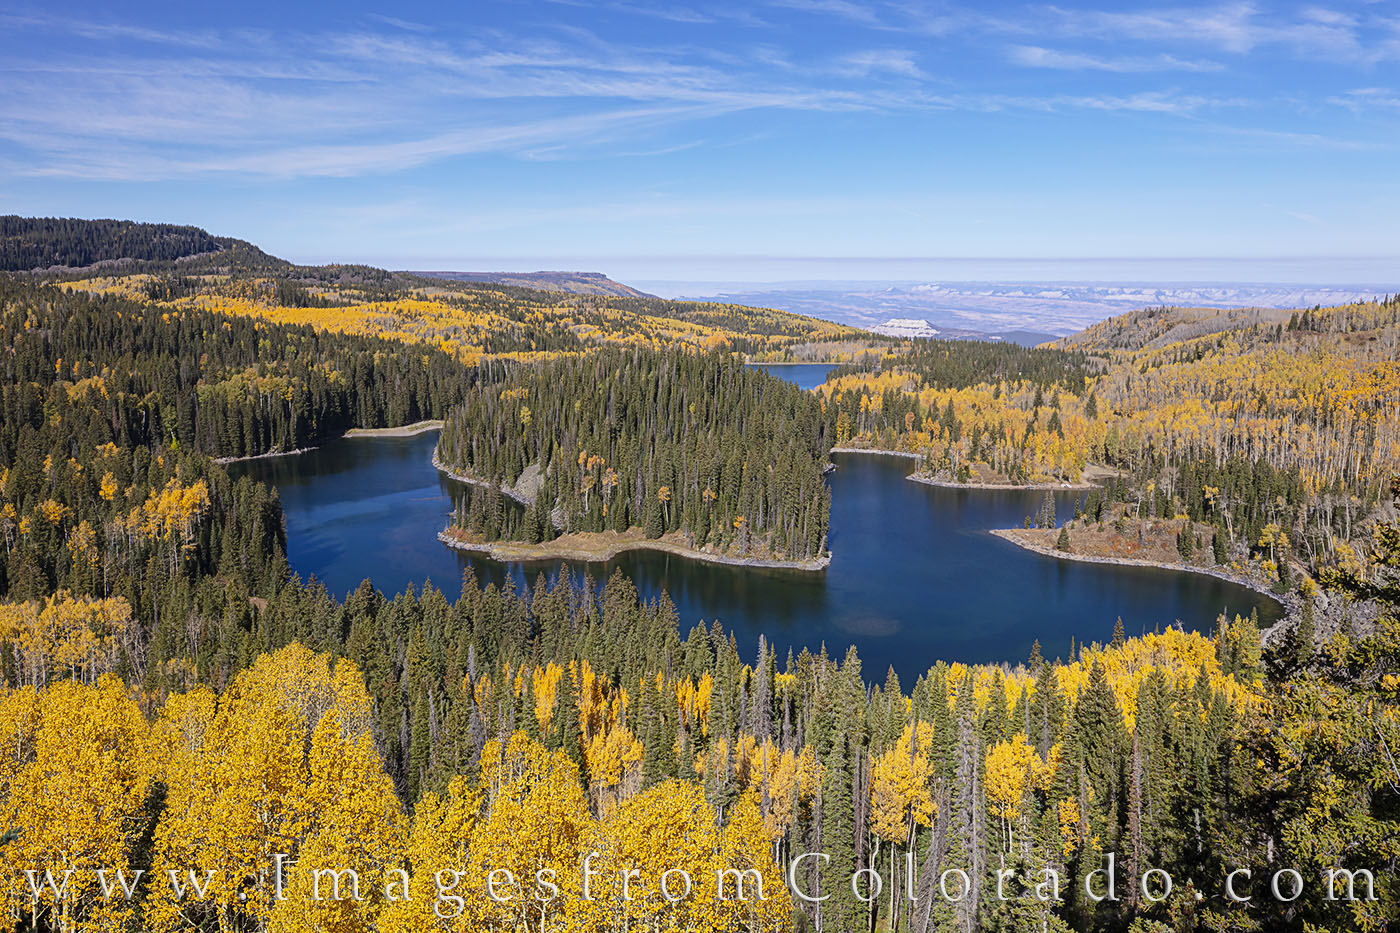 aspen, gold, mesa lakes, grand mesa, autumn, fall, grand mesa scenic byway, october, photo